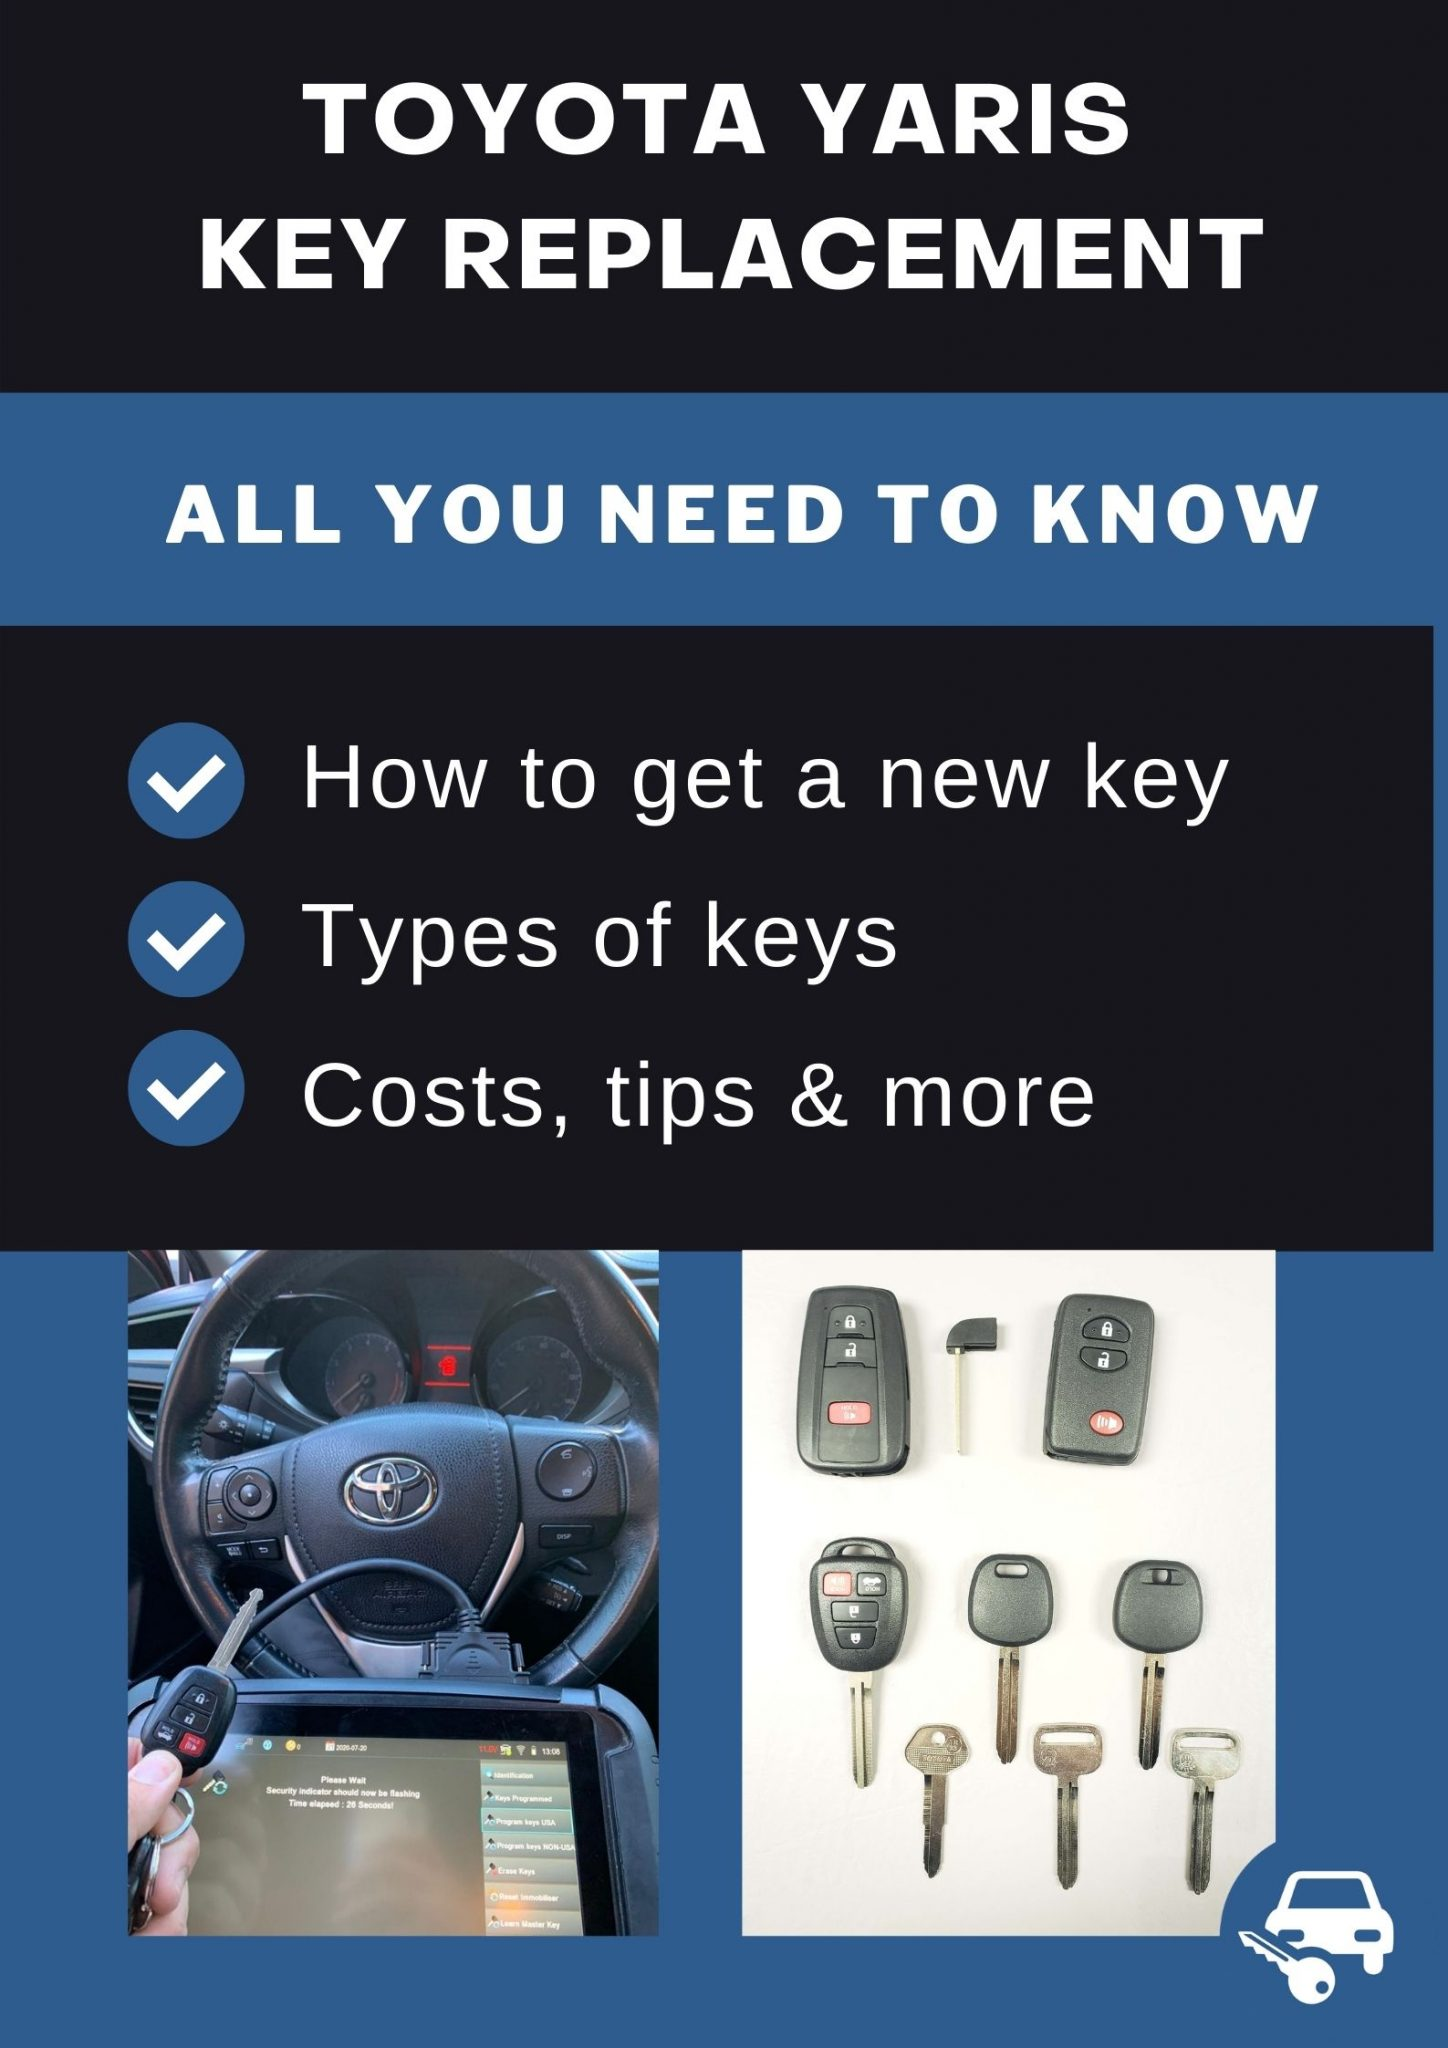 Toyota Yaris Replacement Keys What To Do Options Cost More